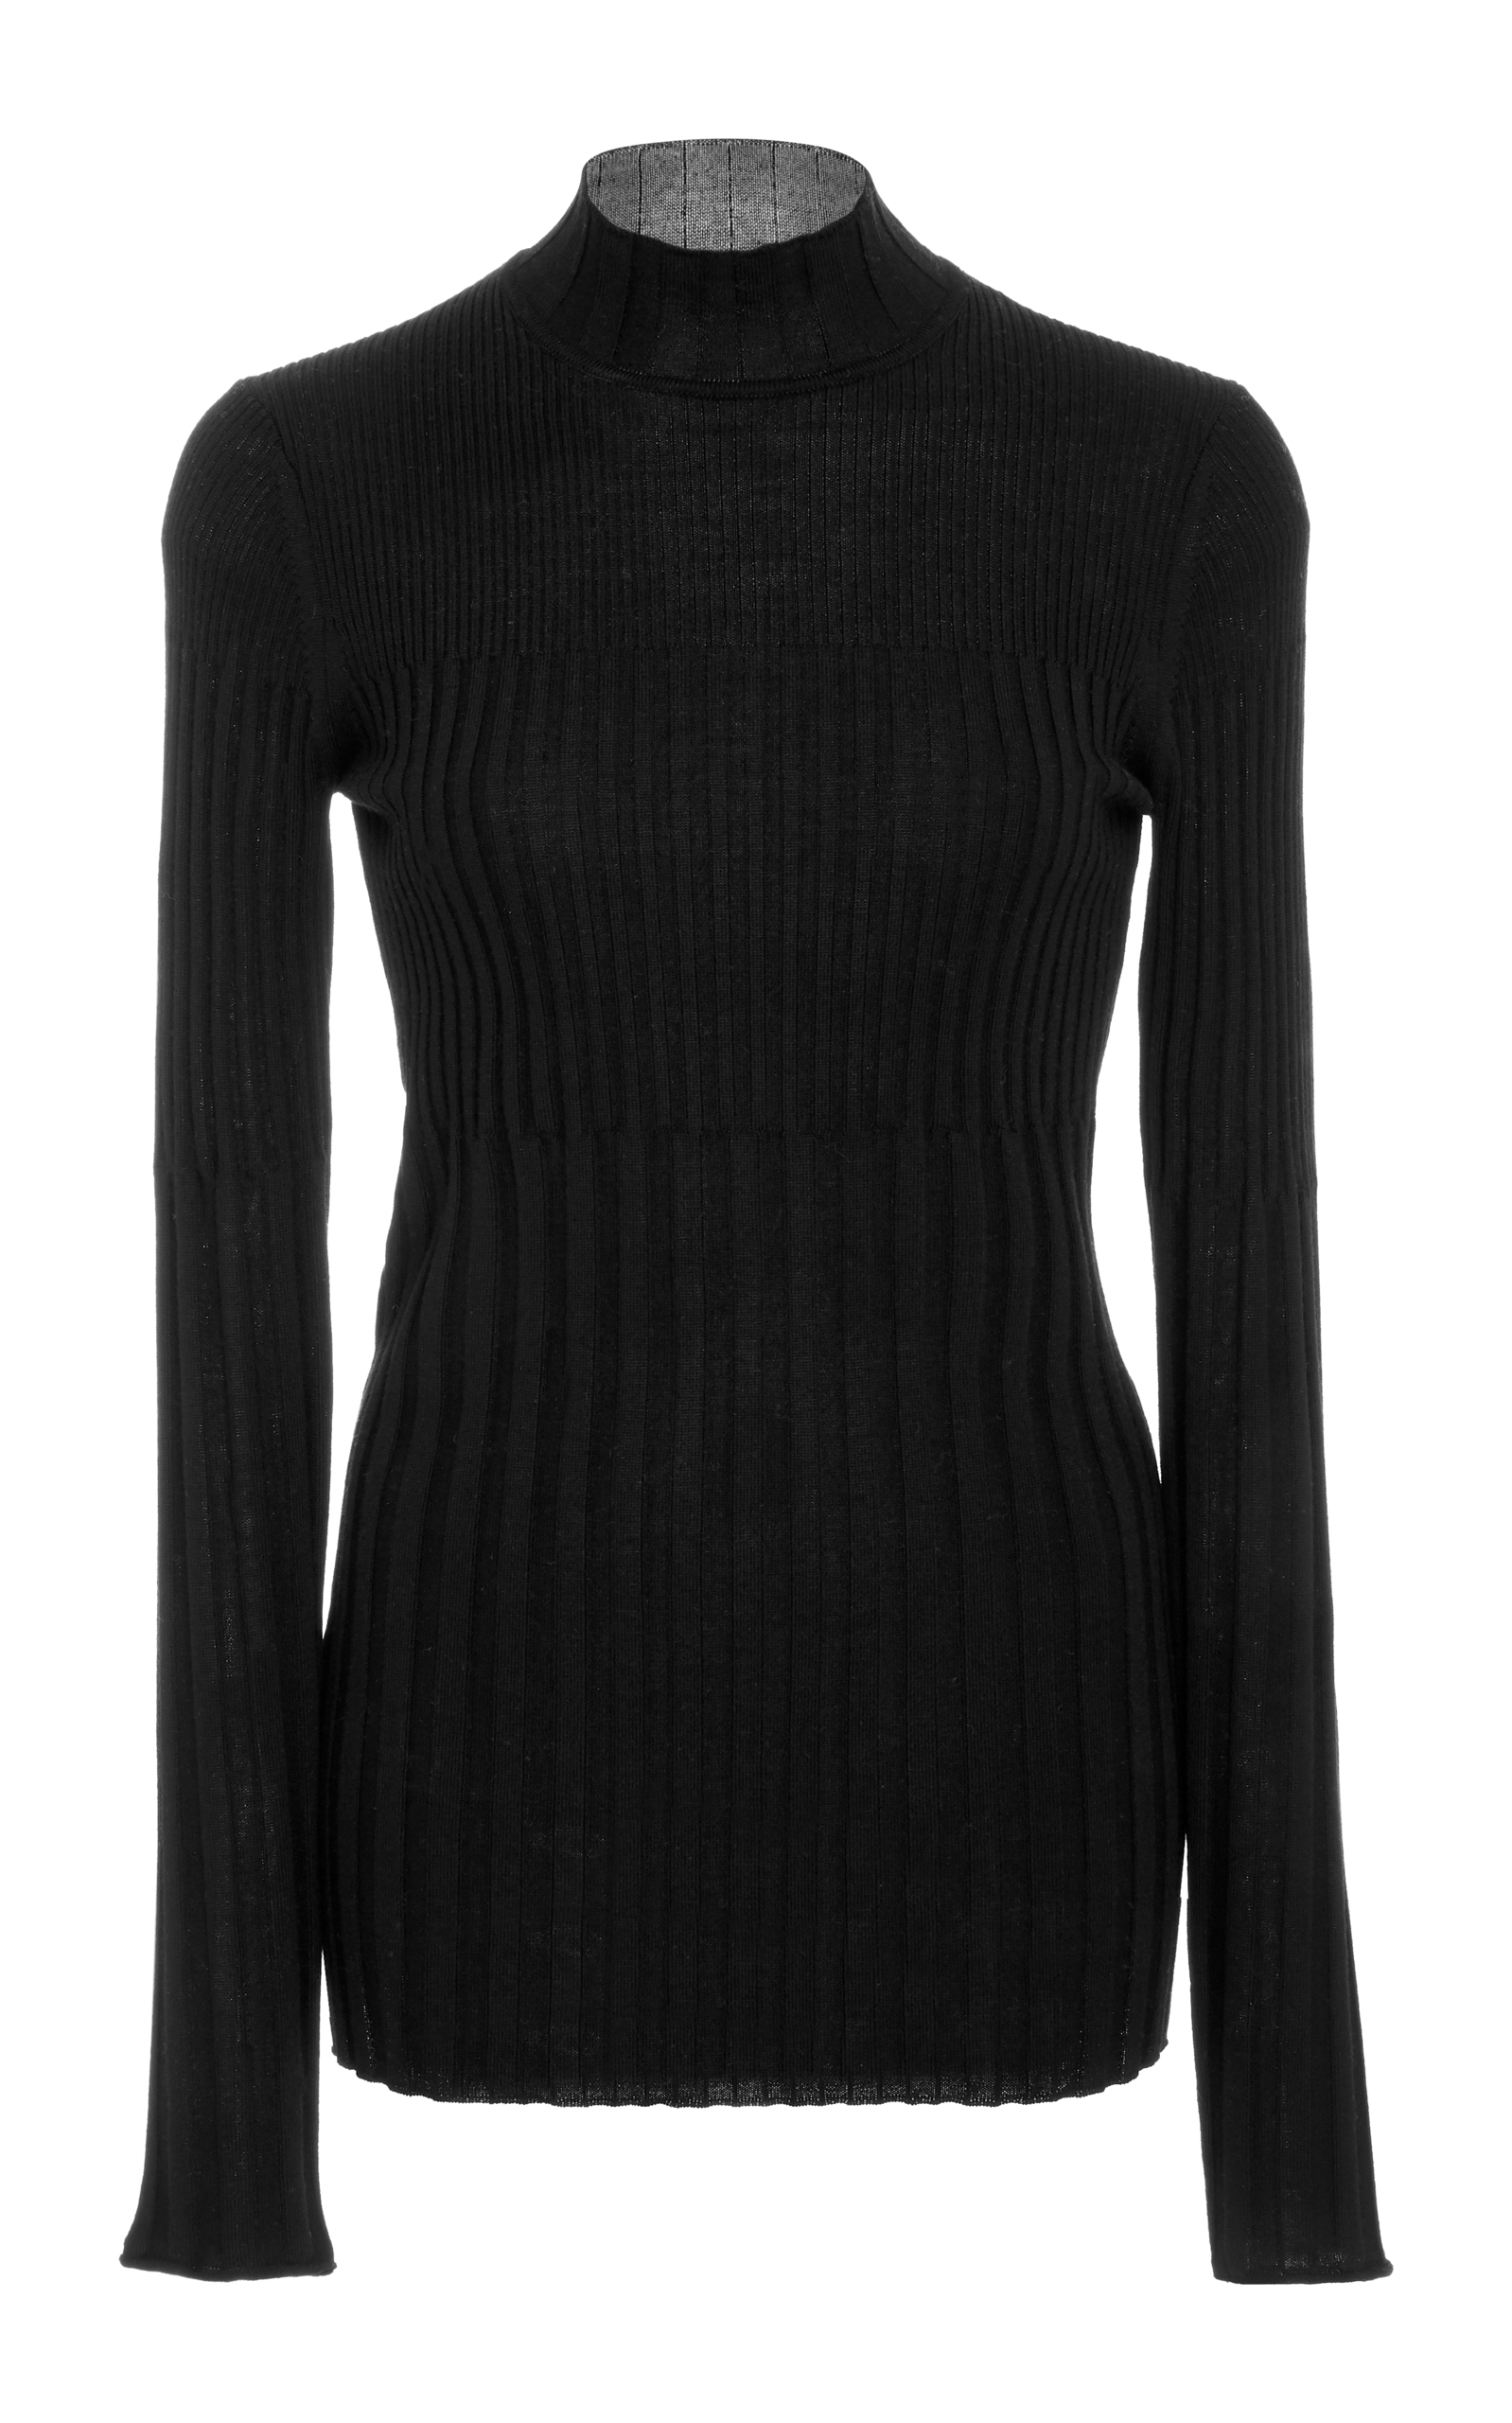 Atm Anthony Thomas Melillo Ribbed Mock Neck Long Sleeve Wool Top In Black